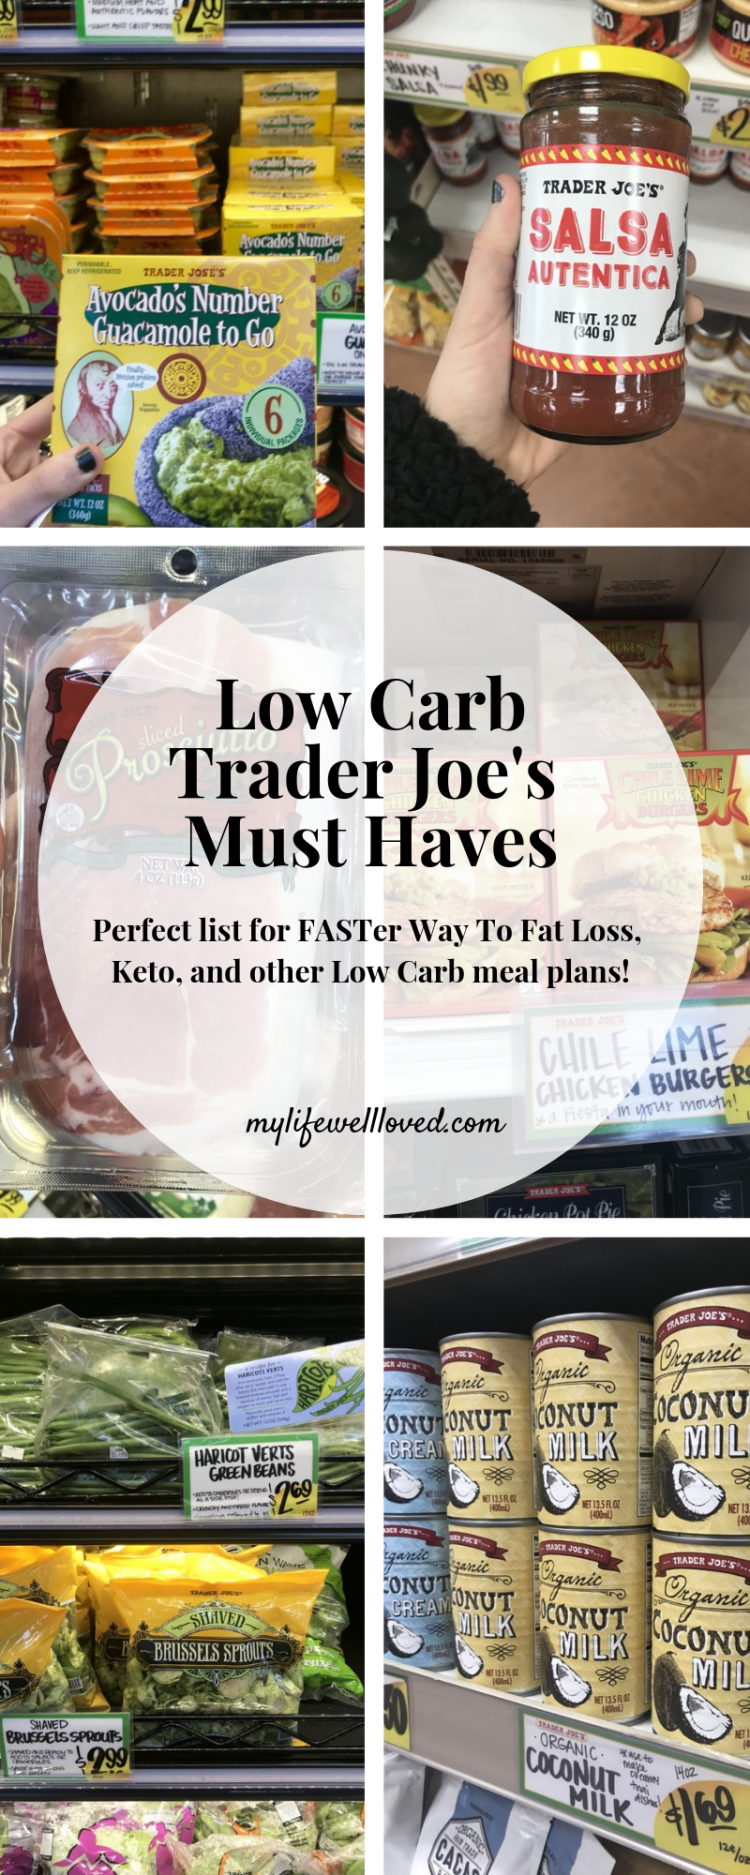 Trader Joe's Must Haves by Alabama Health + Wellness blogger, Heather Brown // My Life Well Loved